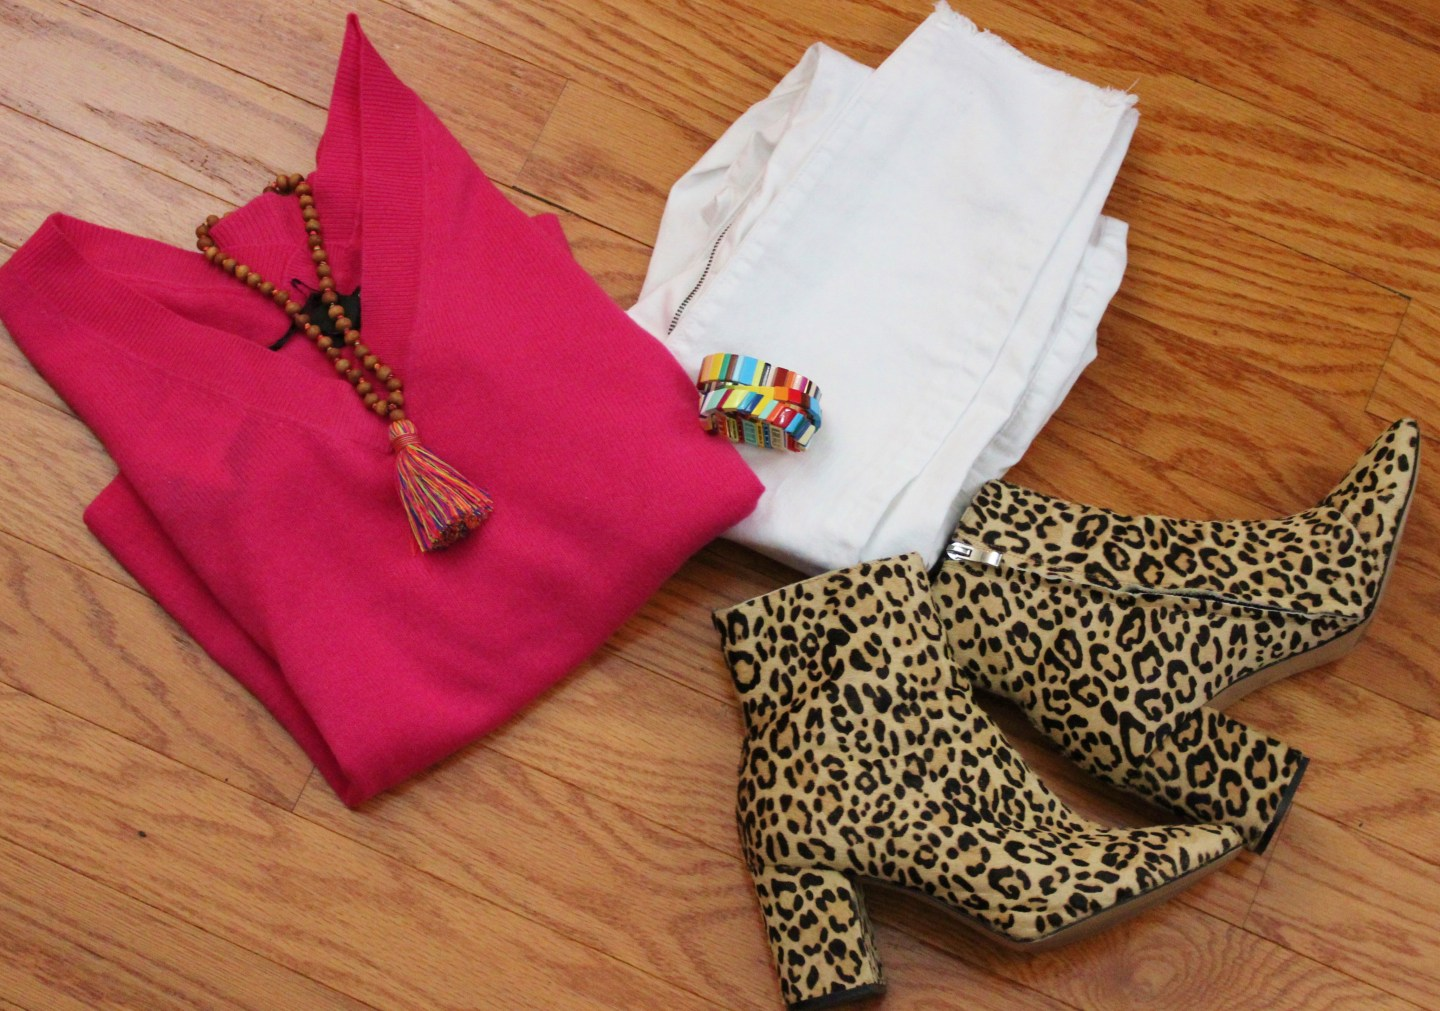 Pink Cashmere + White jeans + Leopard Booties